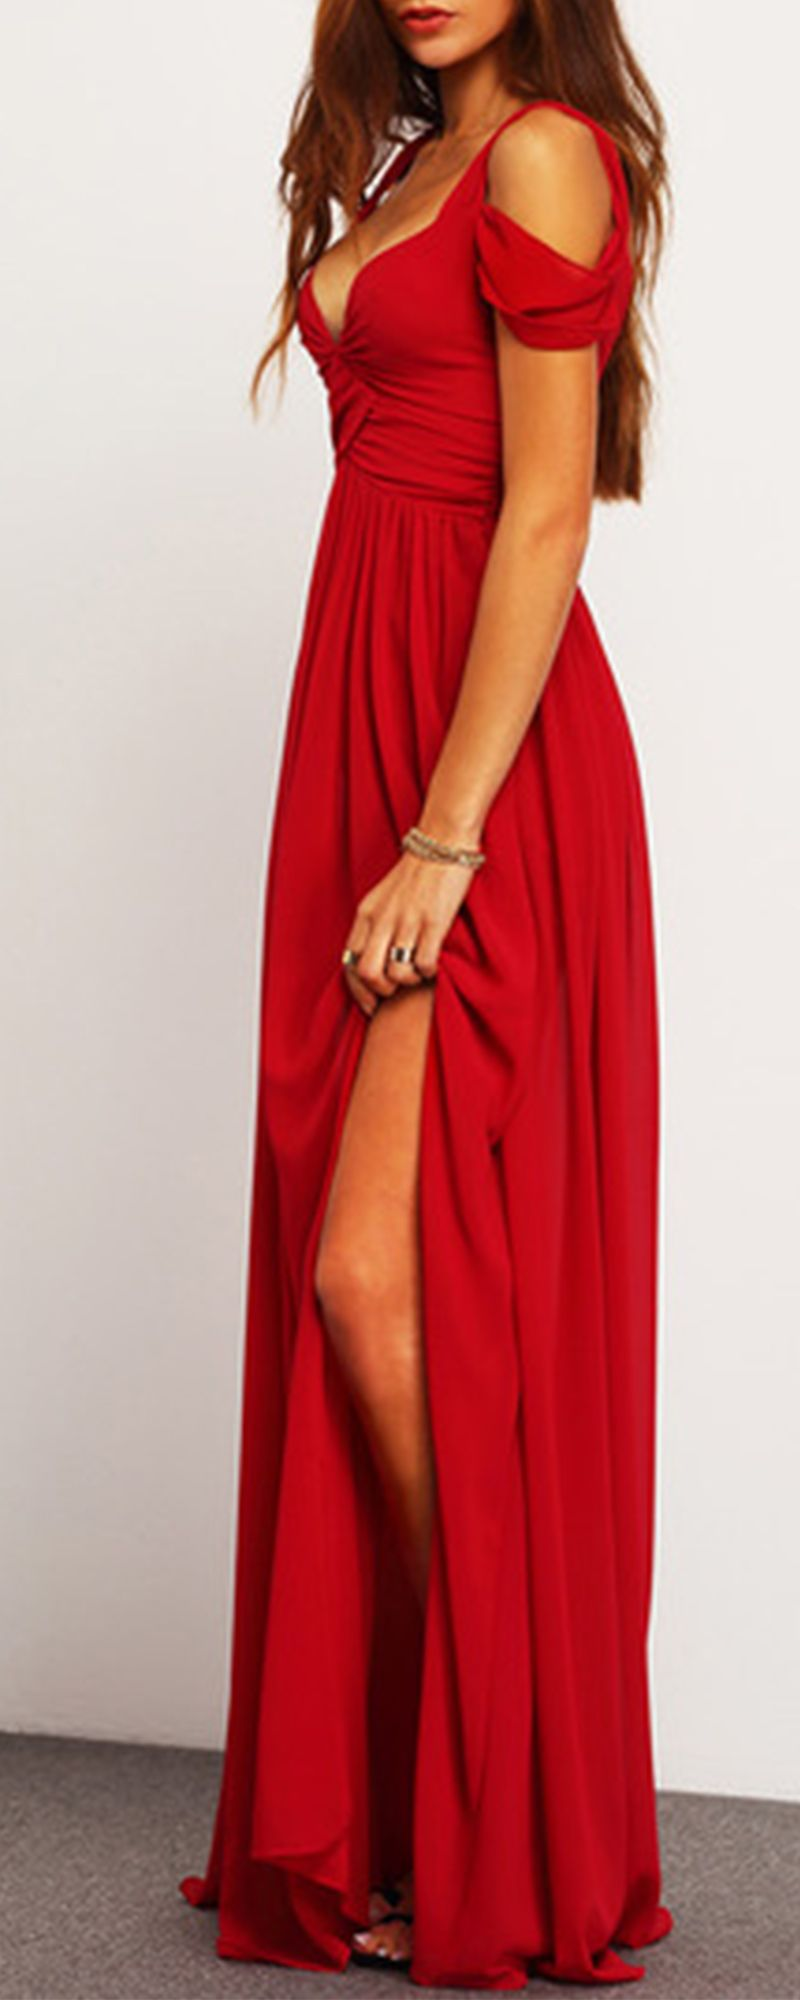 Elegance Wine Red Maxi Dress in case I go to any more military